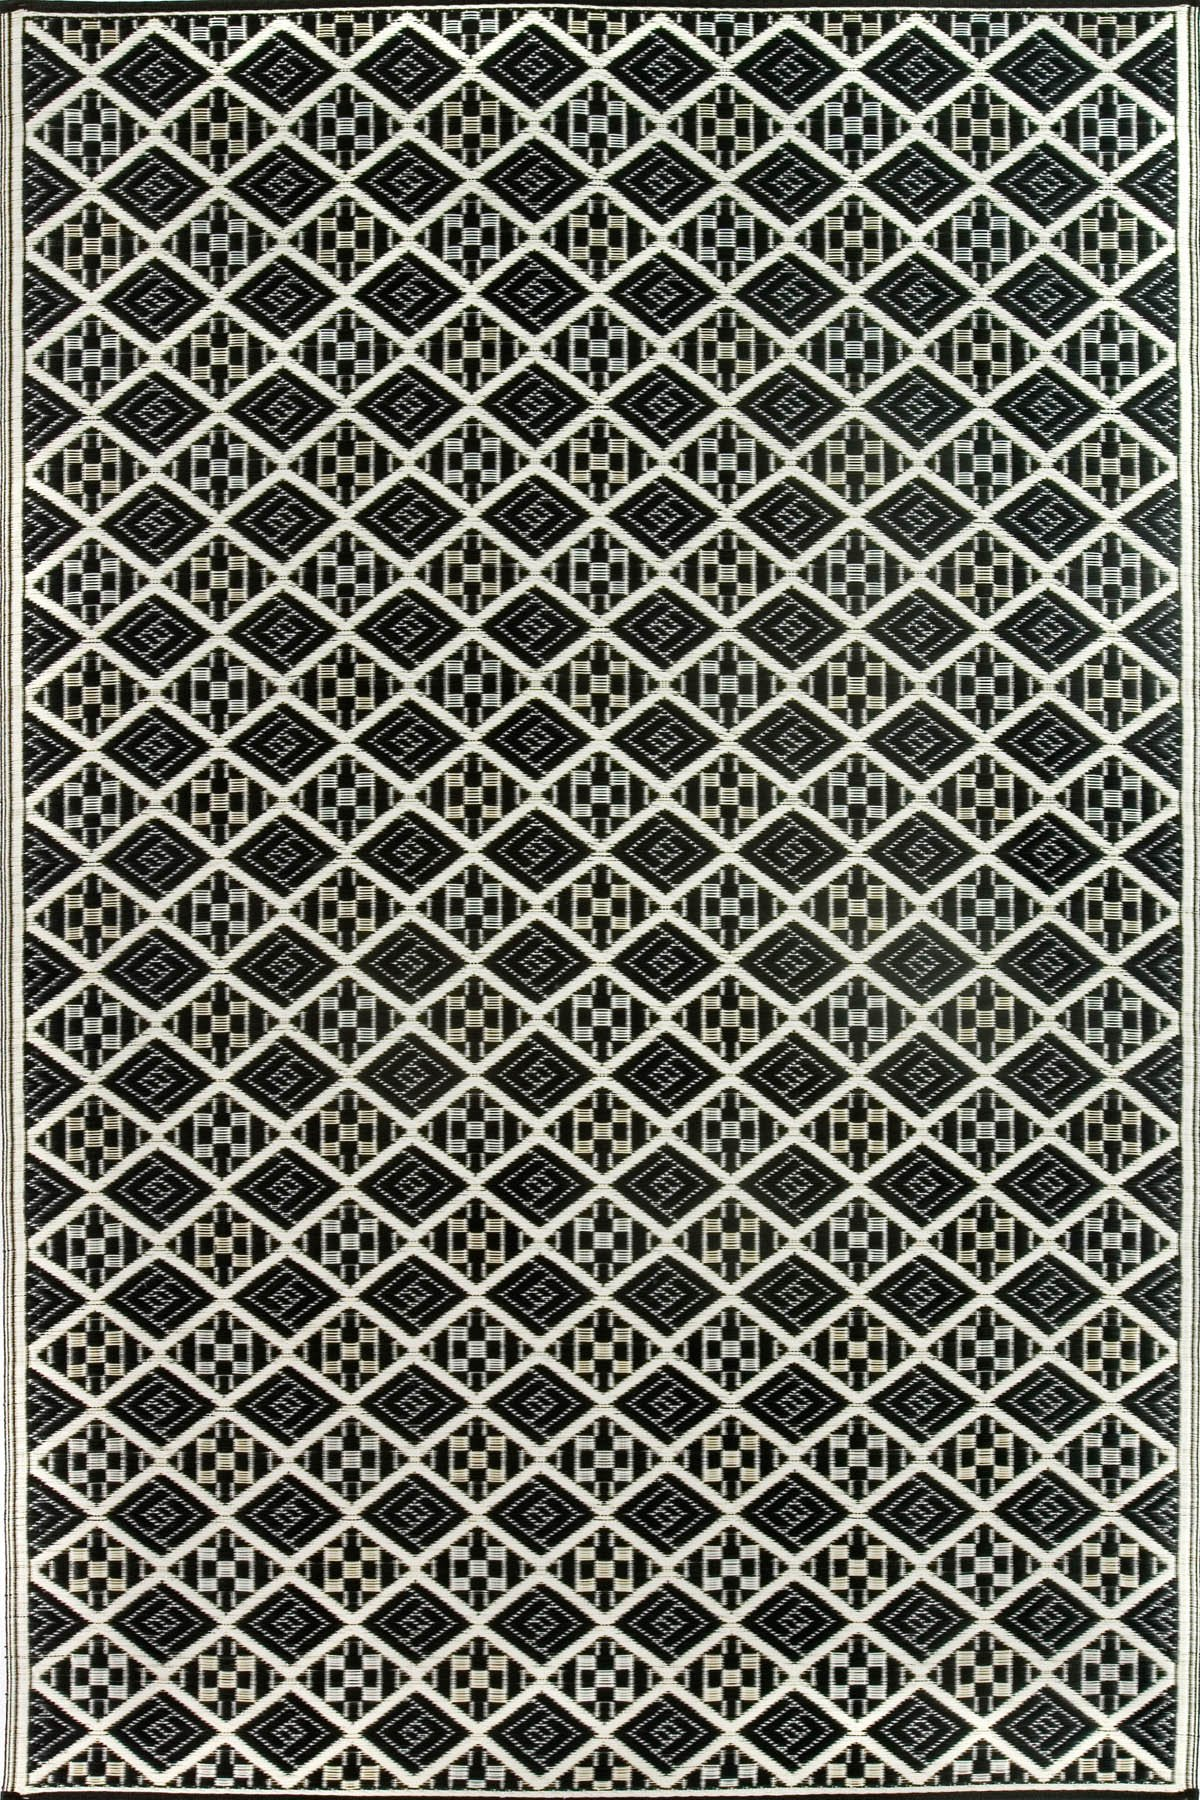 Mad Mats Scotch Indoor/Outdoor Floor Mat, 6 by 9-Feet, Black and White